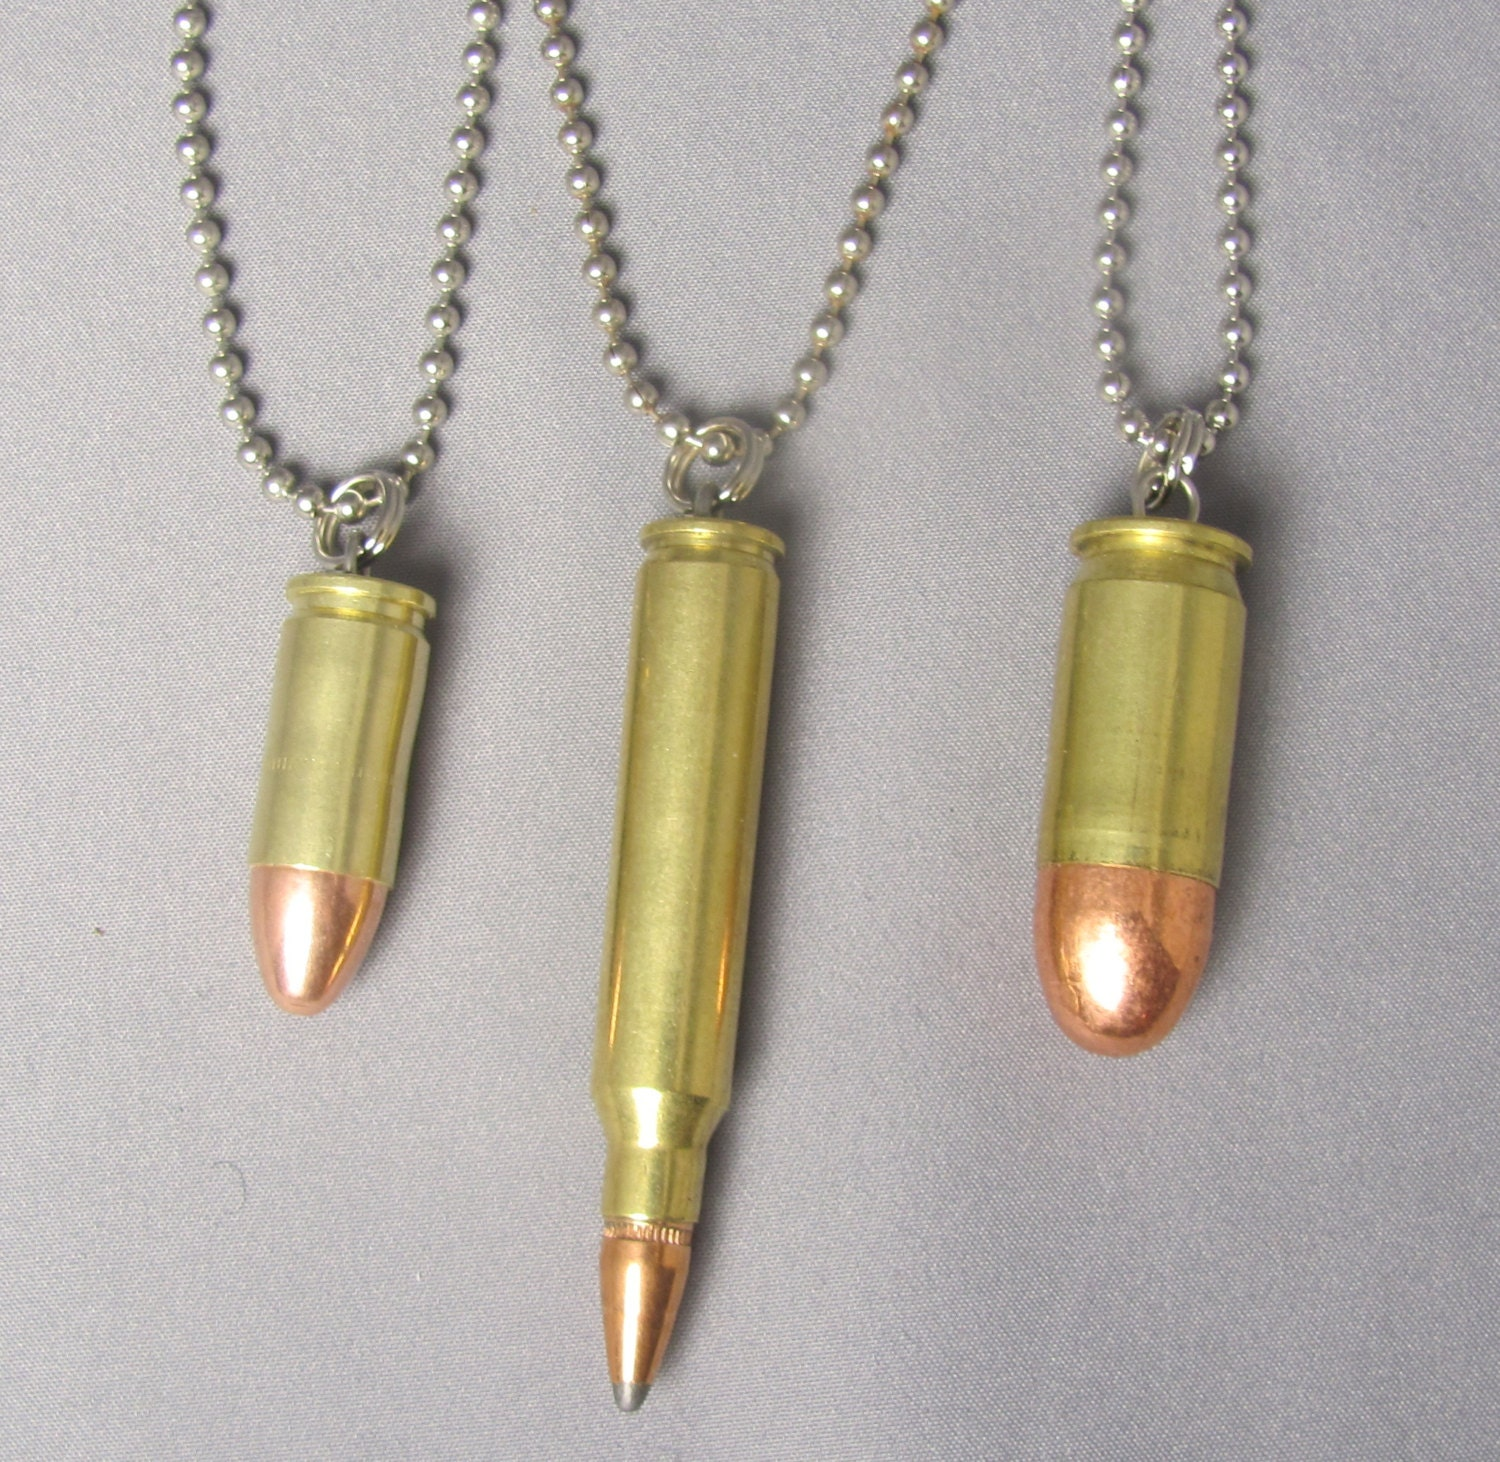 new en jumia from necklace product ng men neckl fashion pendant price s nigeria bullet arrival